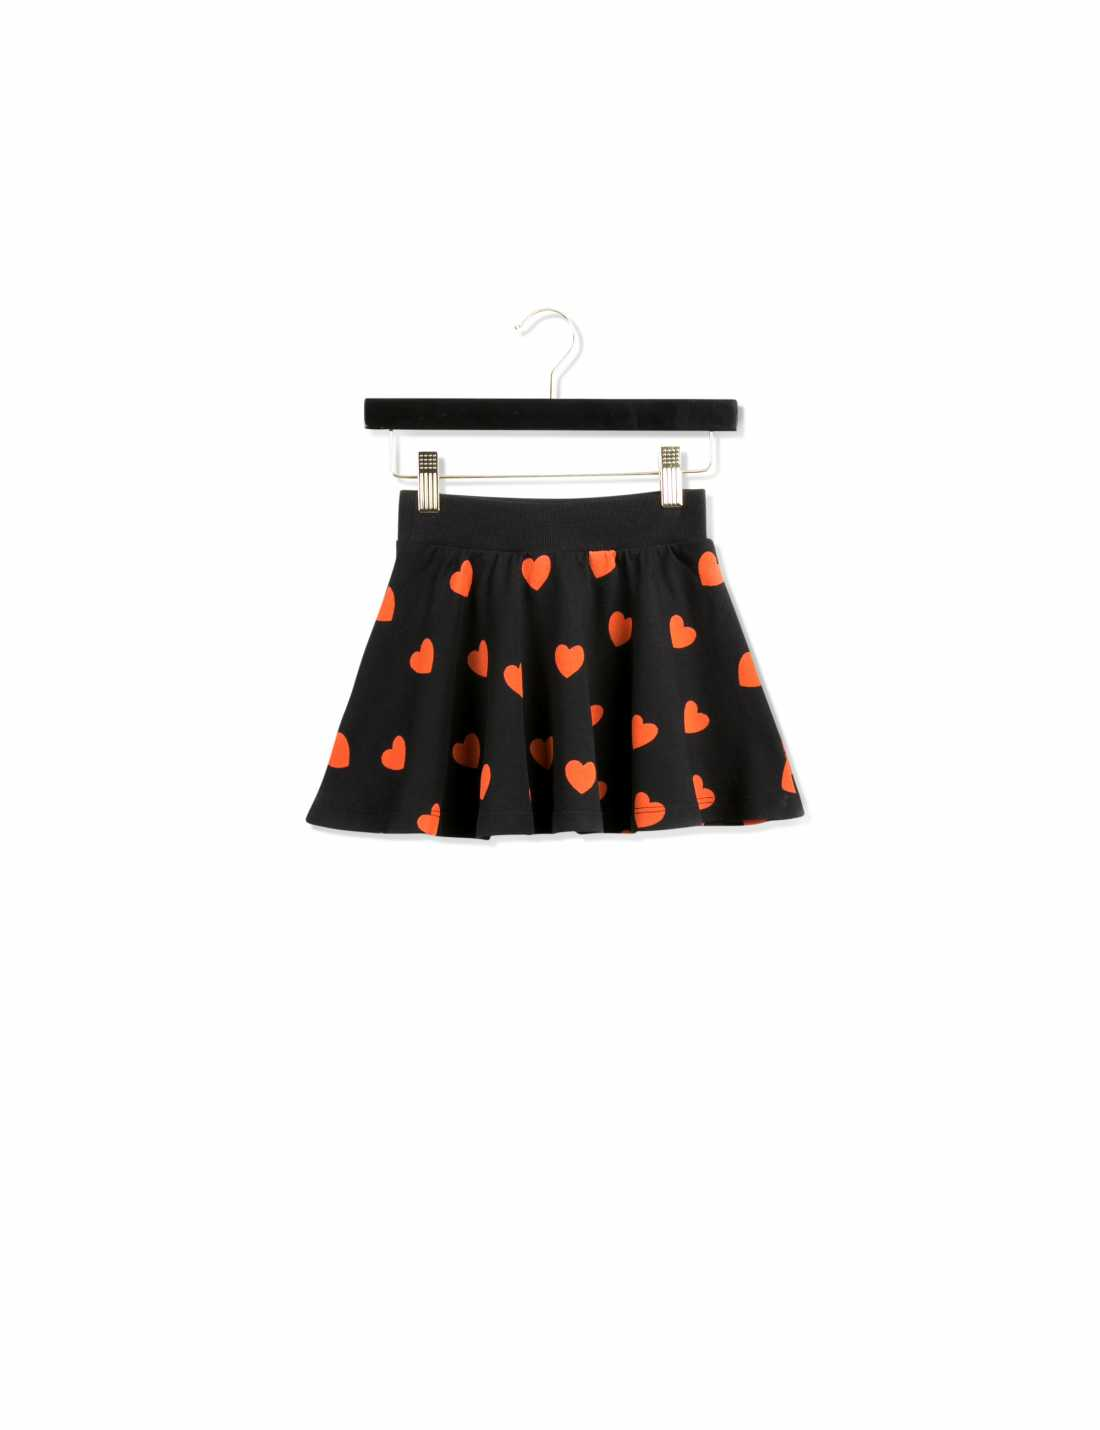 Black circle skirt with printed red hearts all over